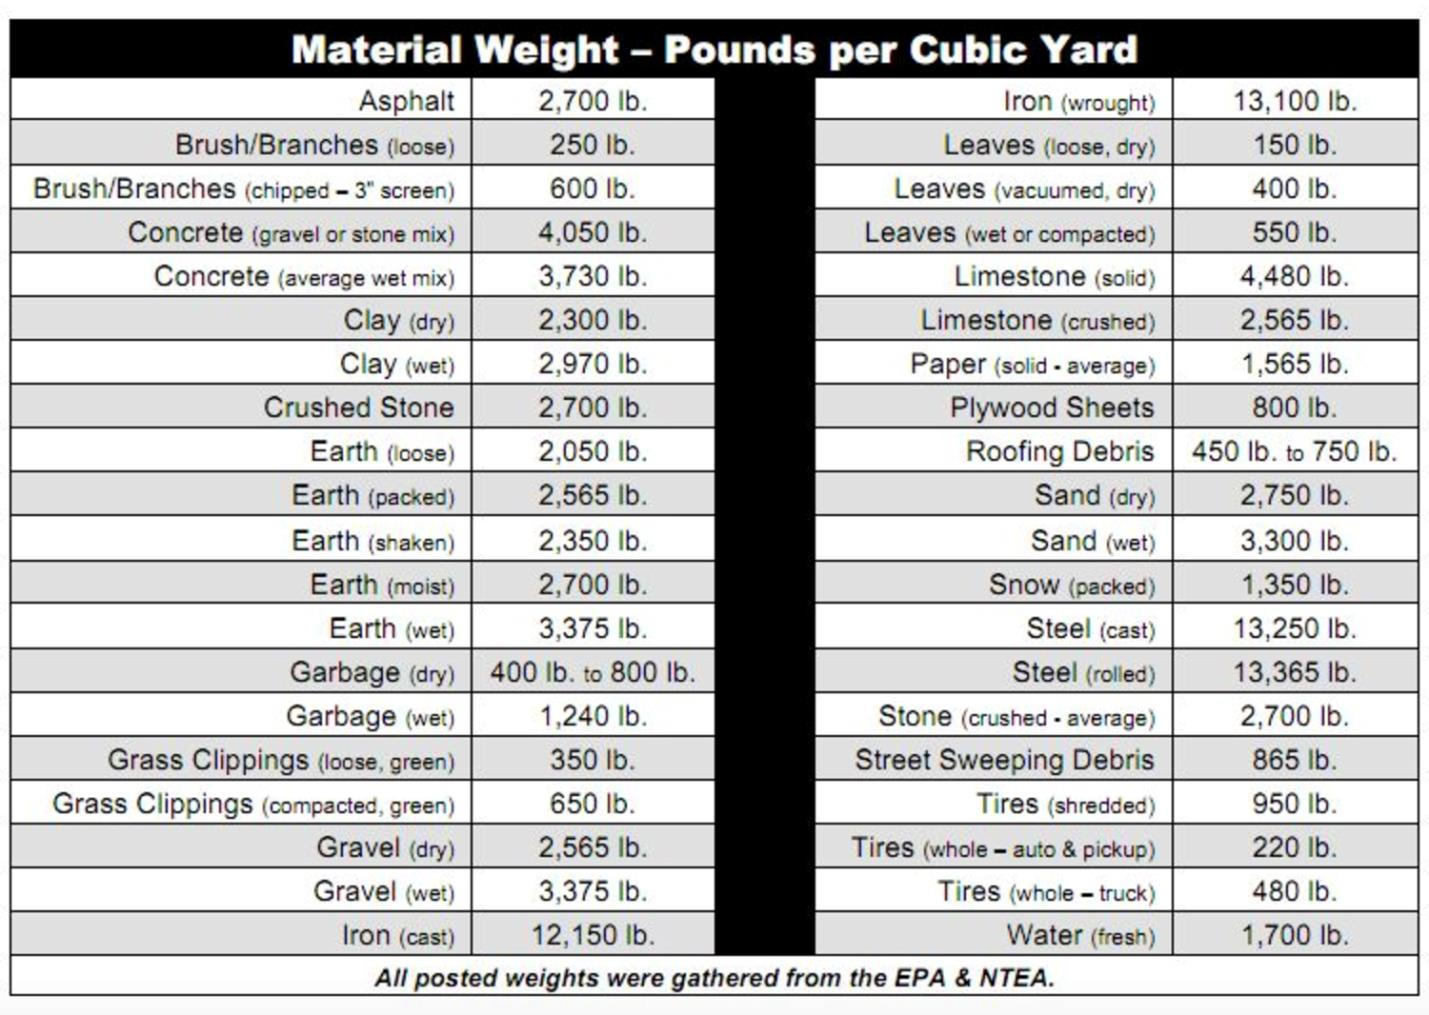 Material Weights for Dumpster Rental